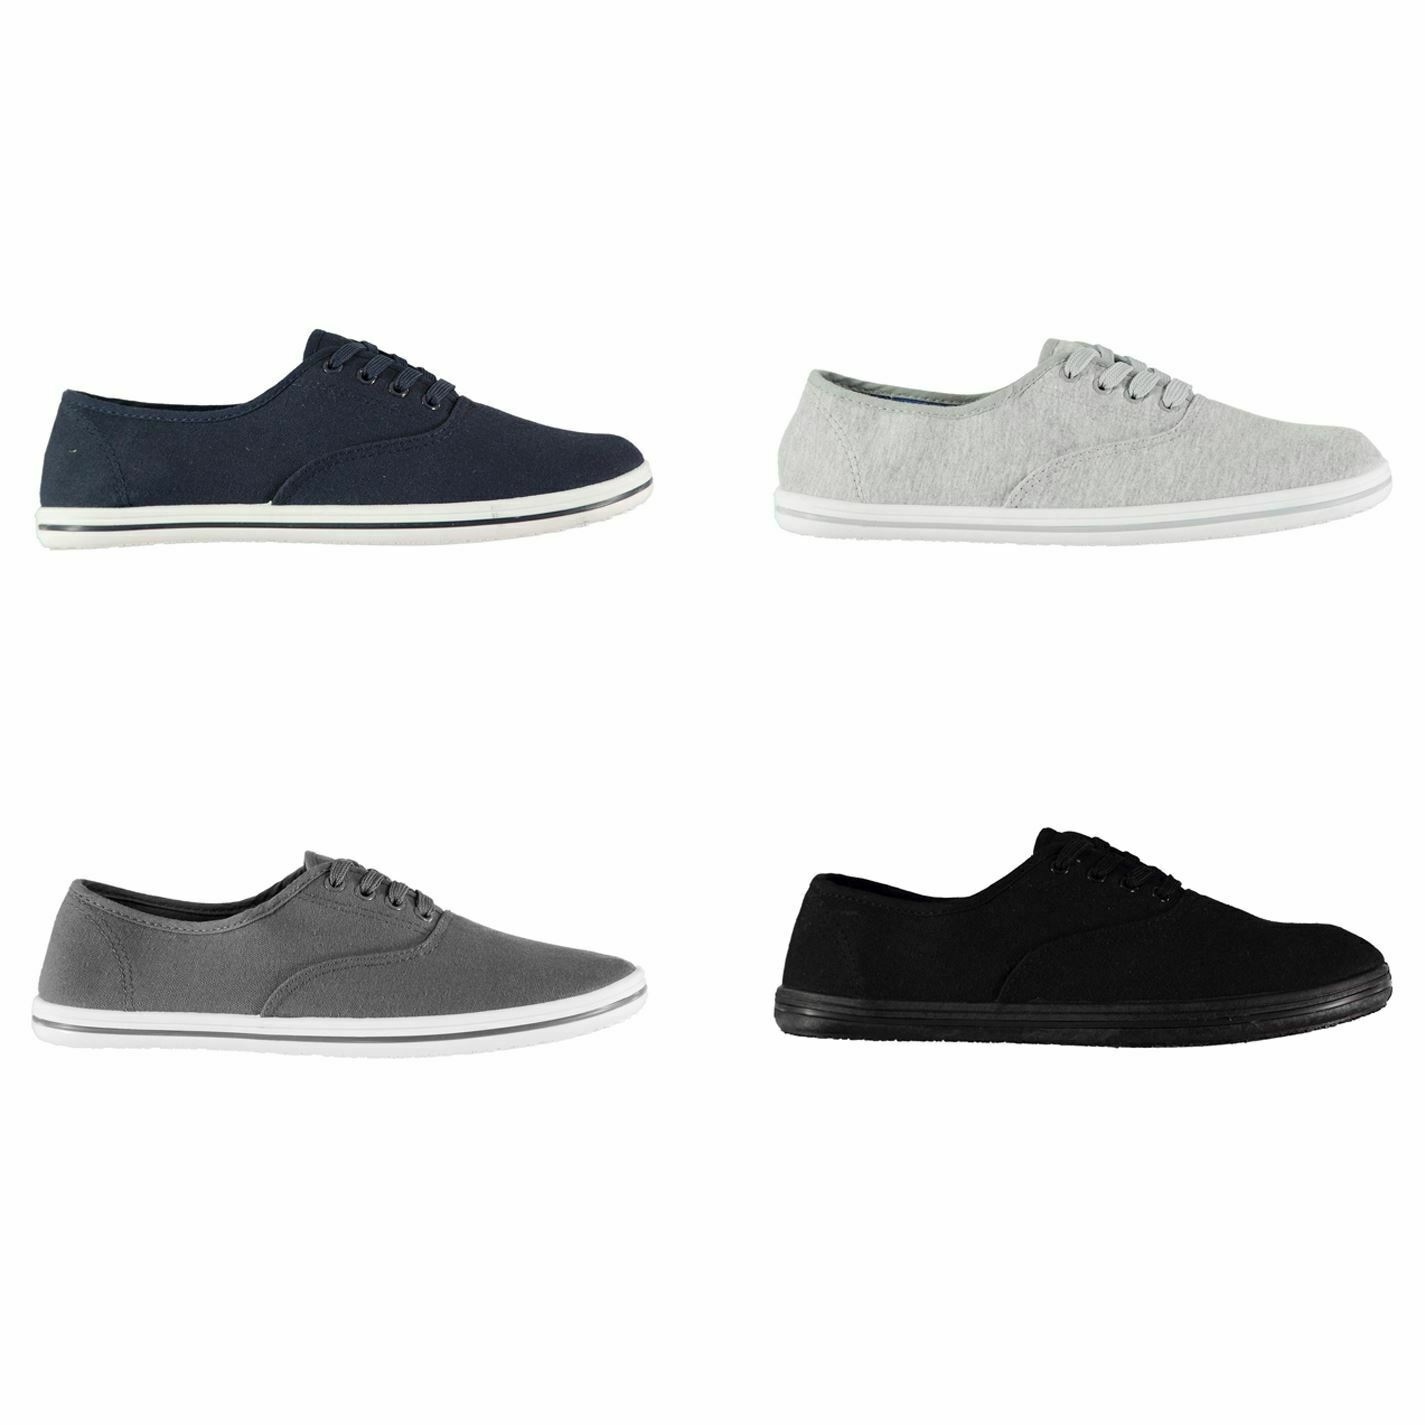 Slazenger Canvas Slip On Shoes Womens Athleisure Trainers Sneakers Footwear A Wide Selection Of Colours And Designs Women's Shoes